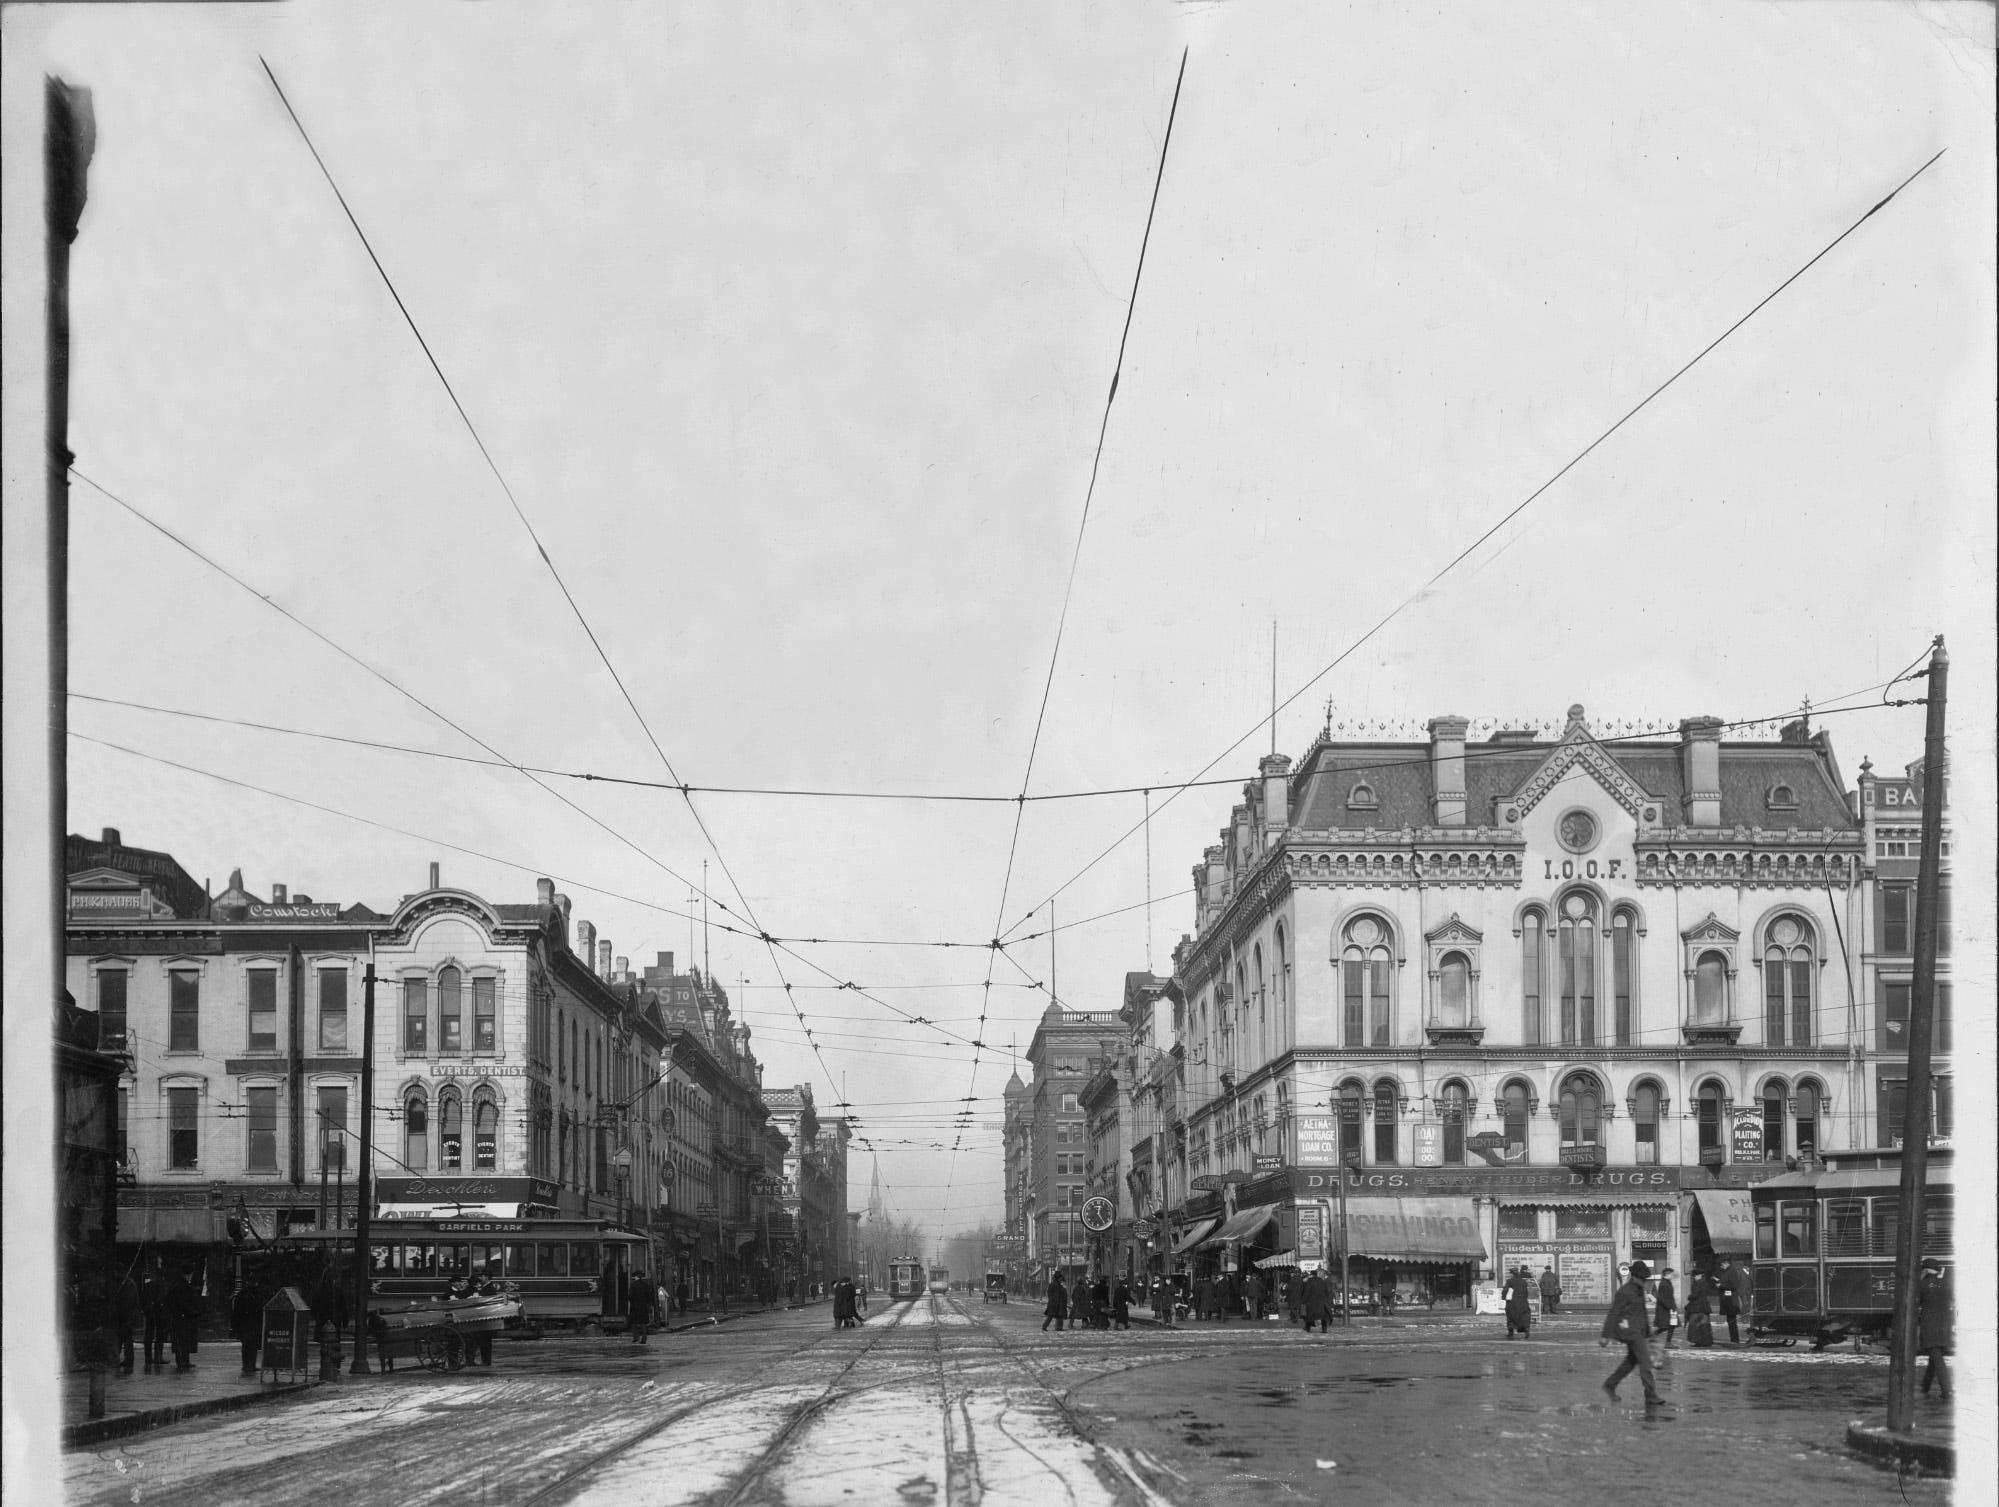 Downtown Indianapolis in 1910, view of Pennsylvania Street from South of Washington Street.